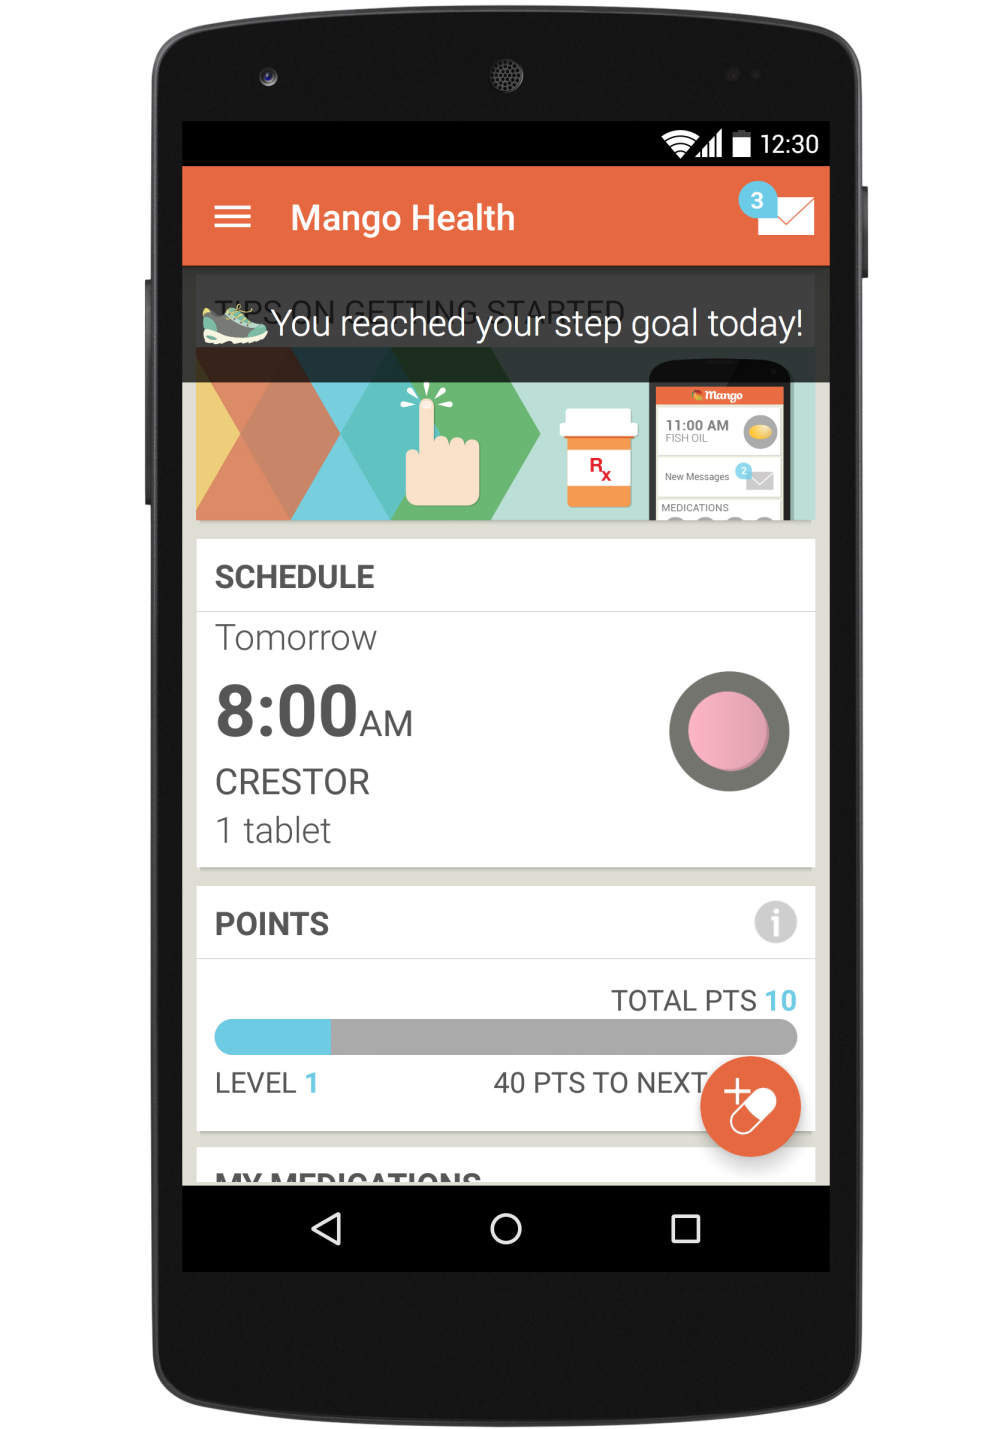 Mango Health said a study shows its app increased medication adherence among hard-to-reach patients